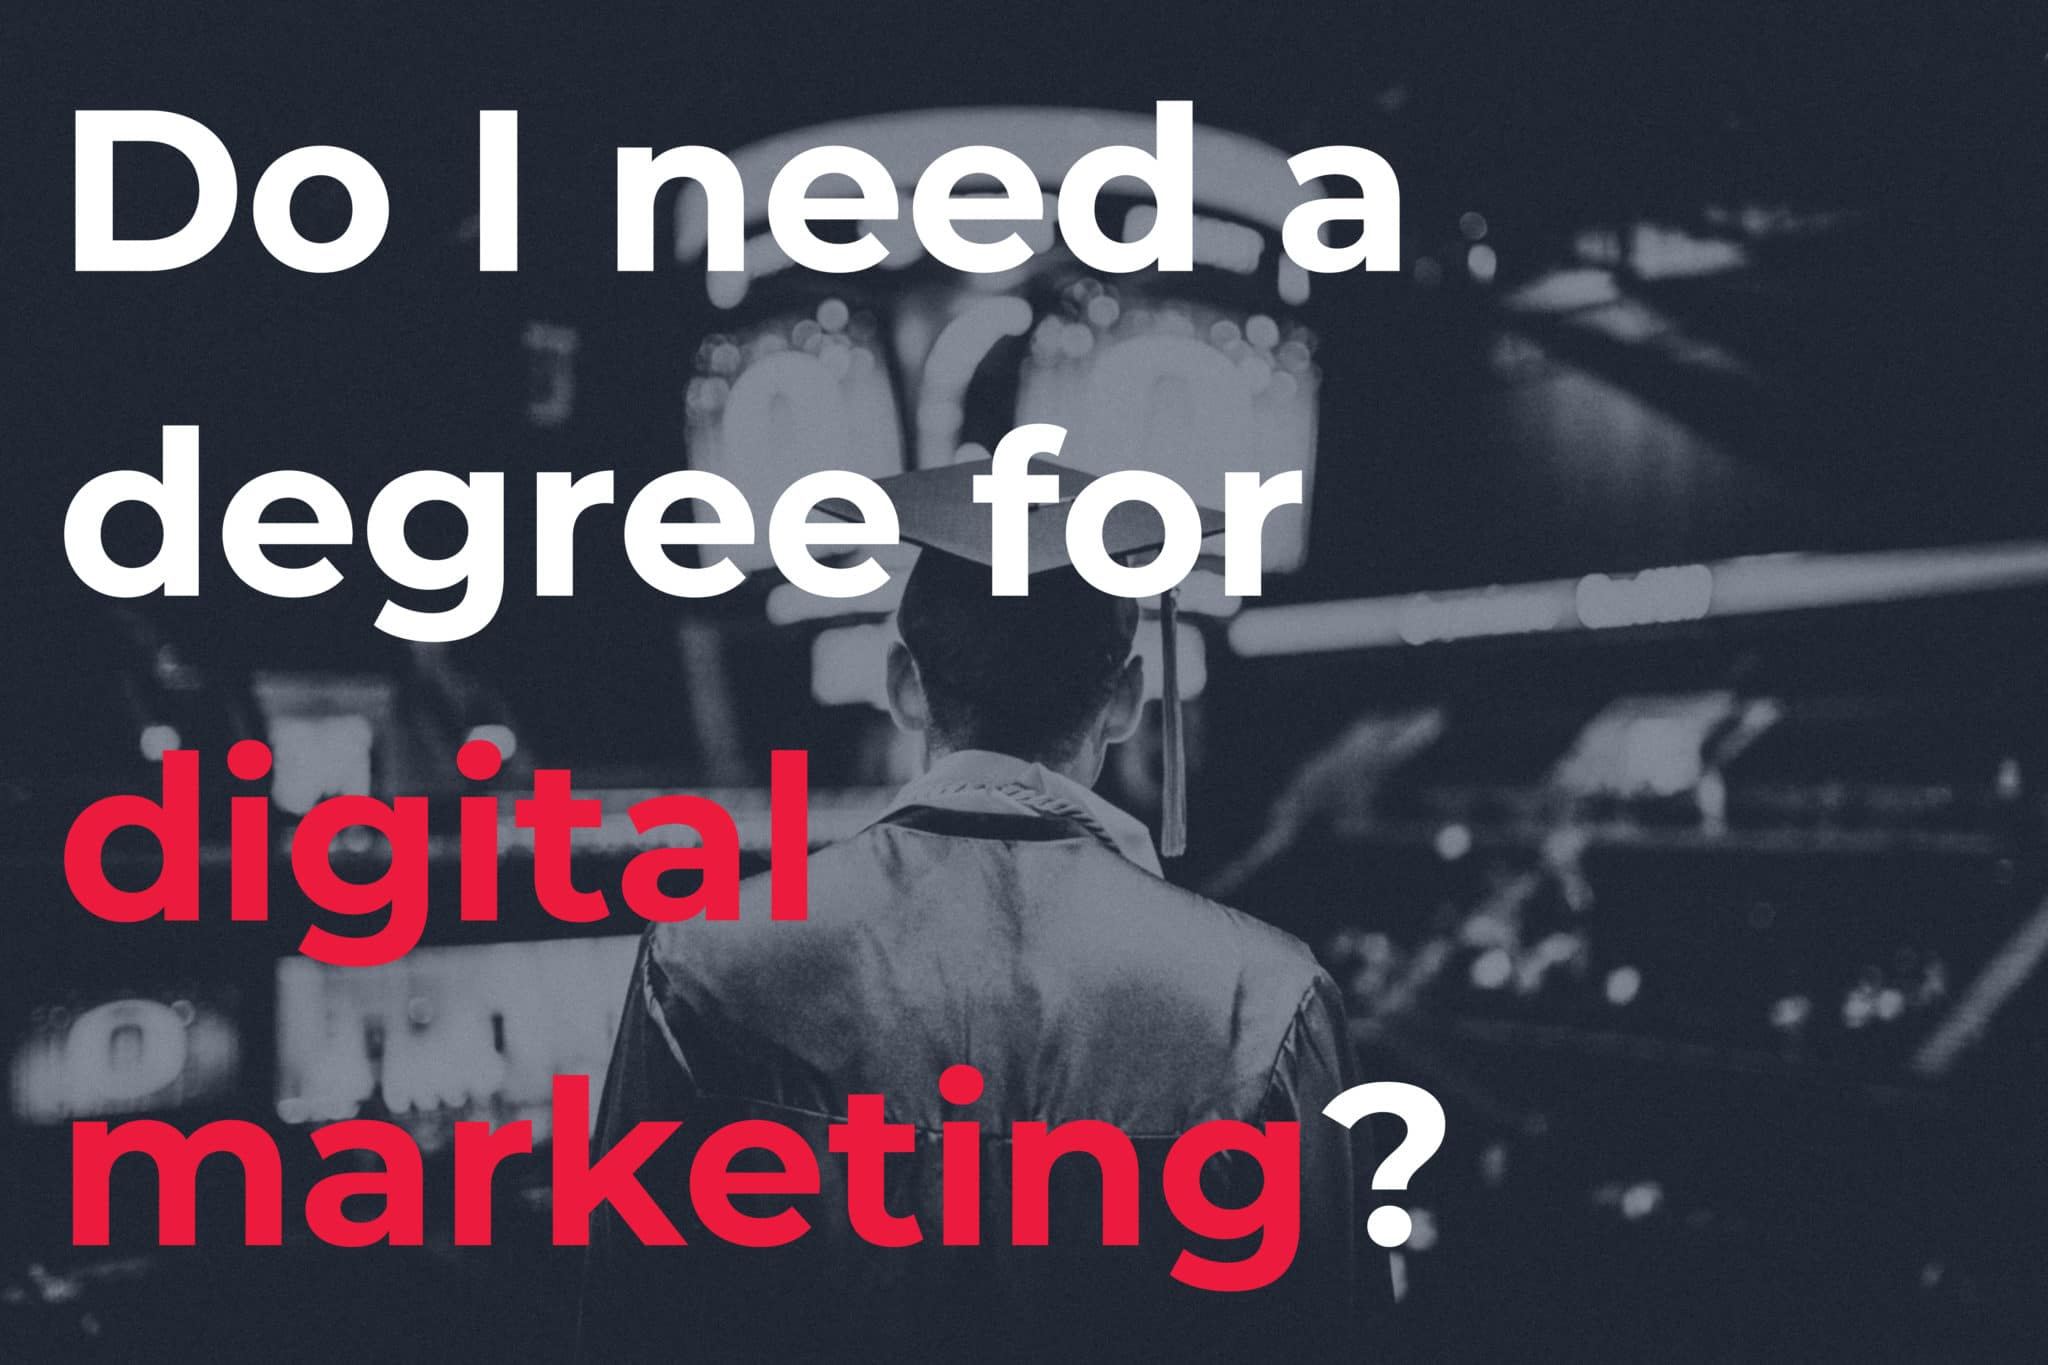 do I need a degree for digital marketing